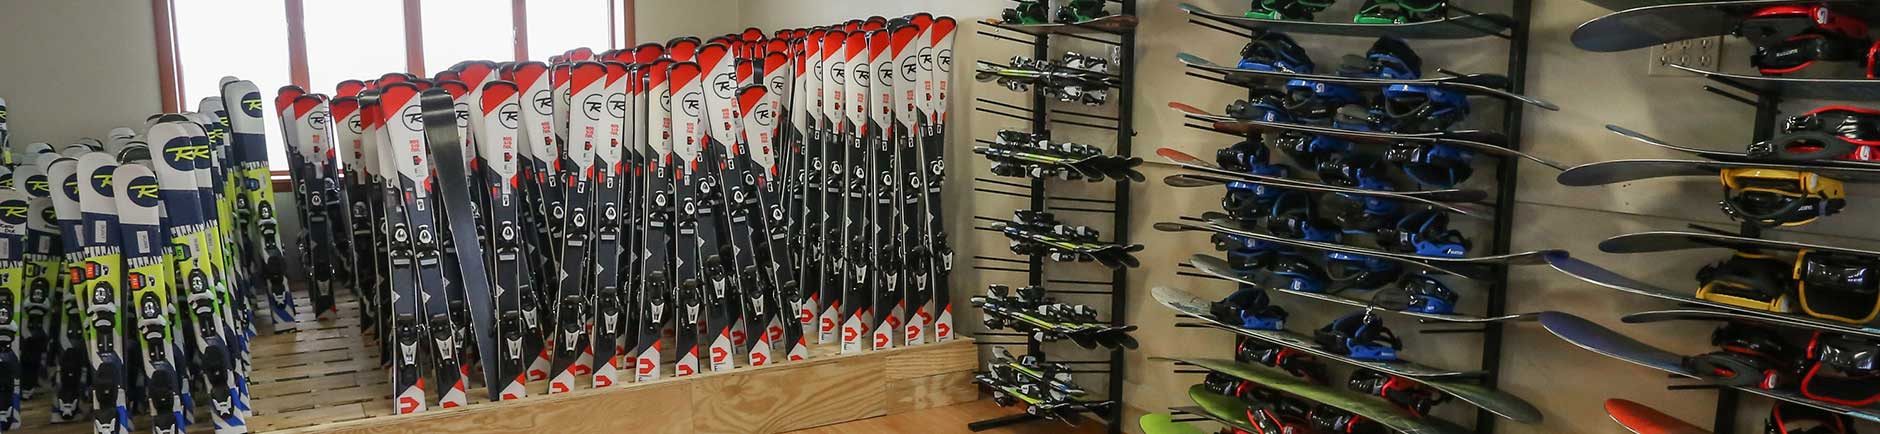 Burton snowboard and Rossignol ski rentals at Deep Creek Ski & Board